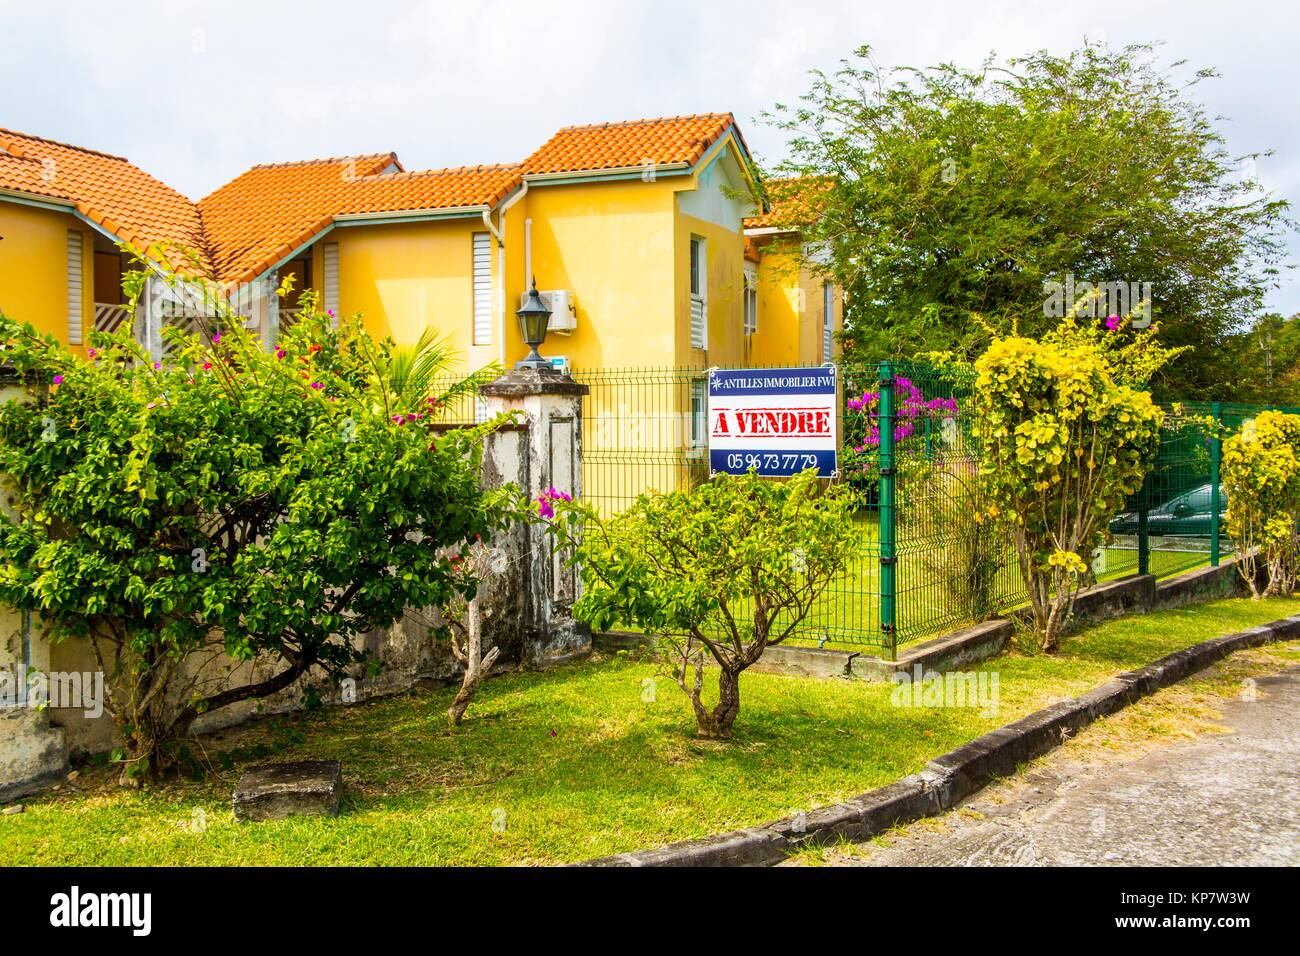 House for sale. Tropical island of Martinique. - Stock Image